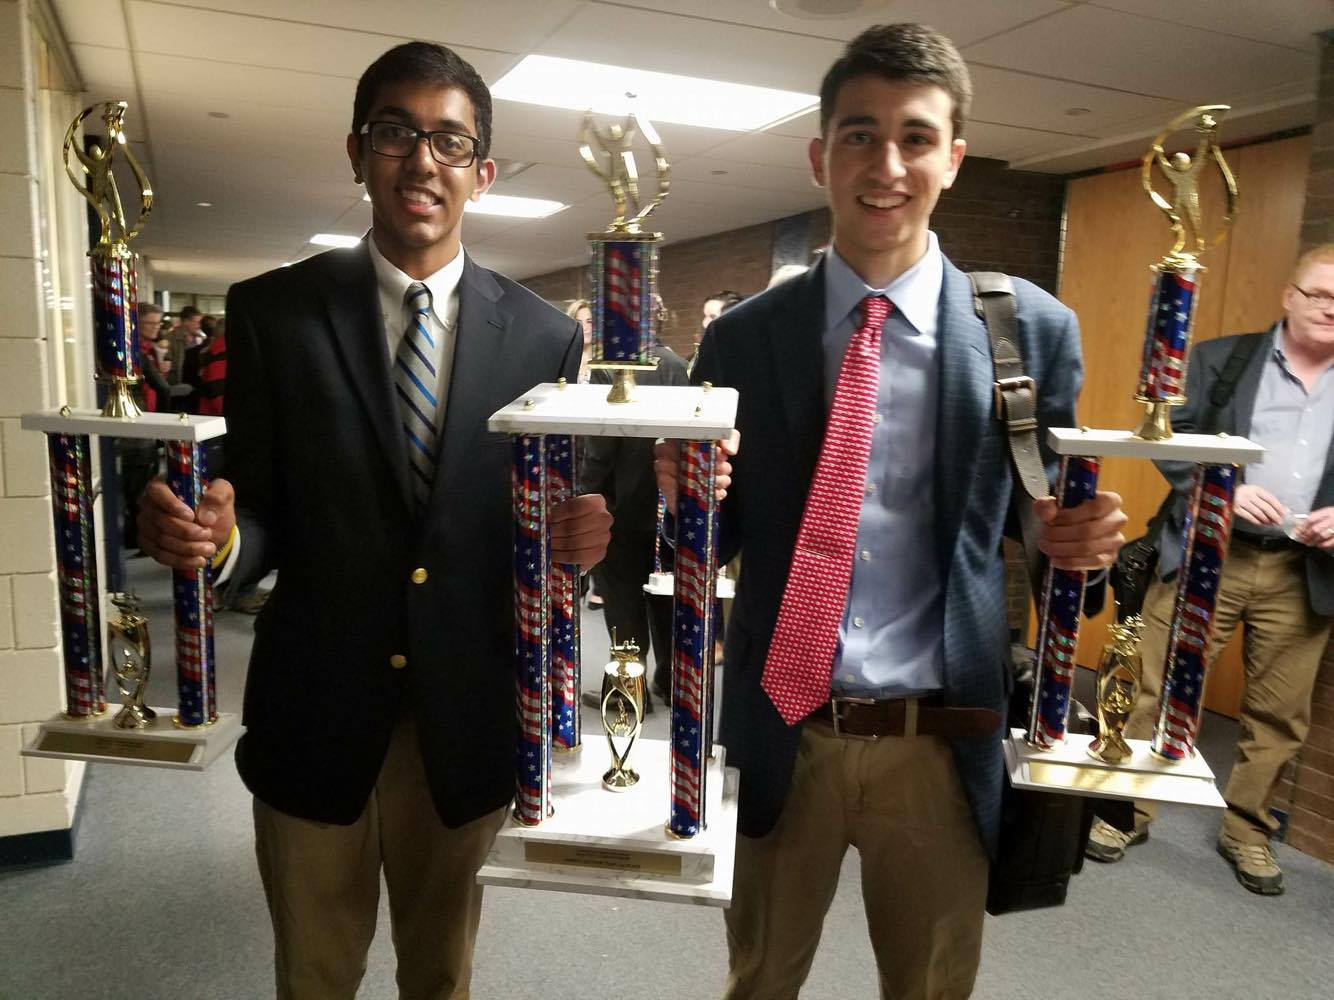 Ridgefield's Will Barth & Kunal Chauhan pose with trophies.